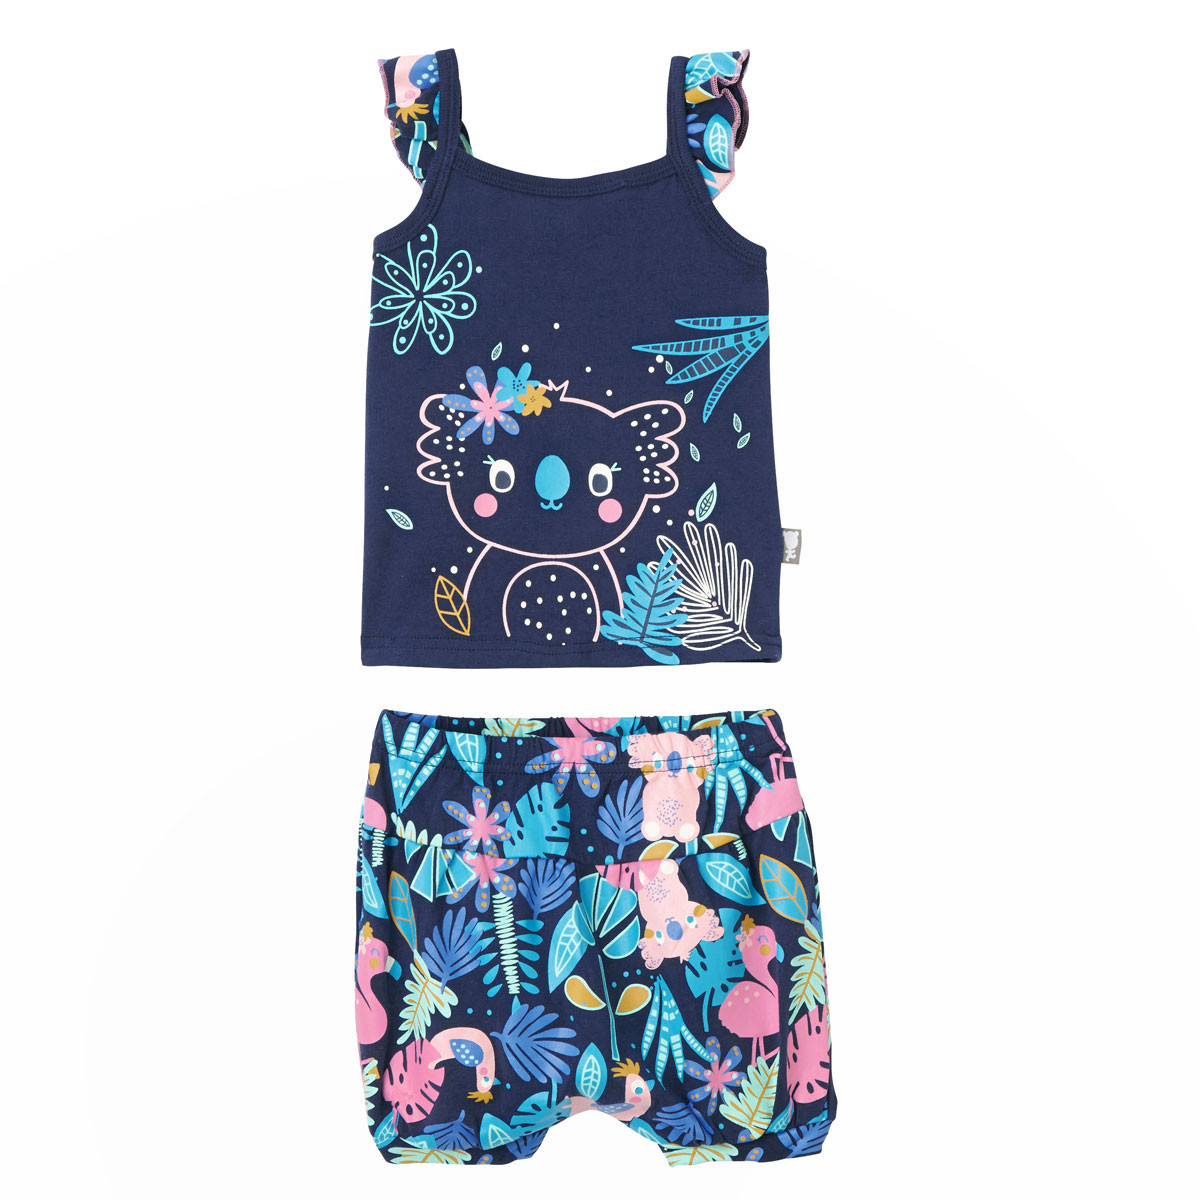 Ensemble bébé fille débardeur + short bloomer Sao